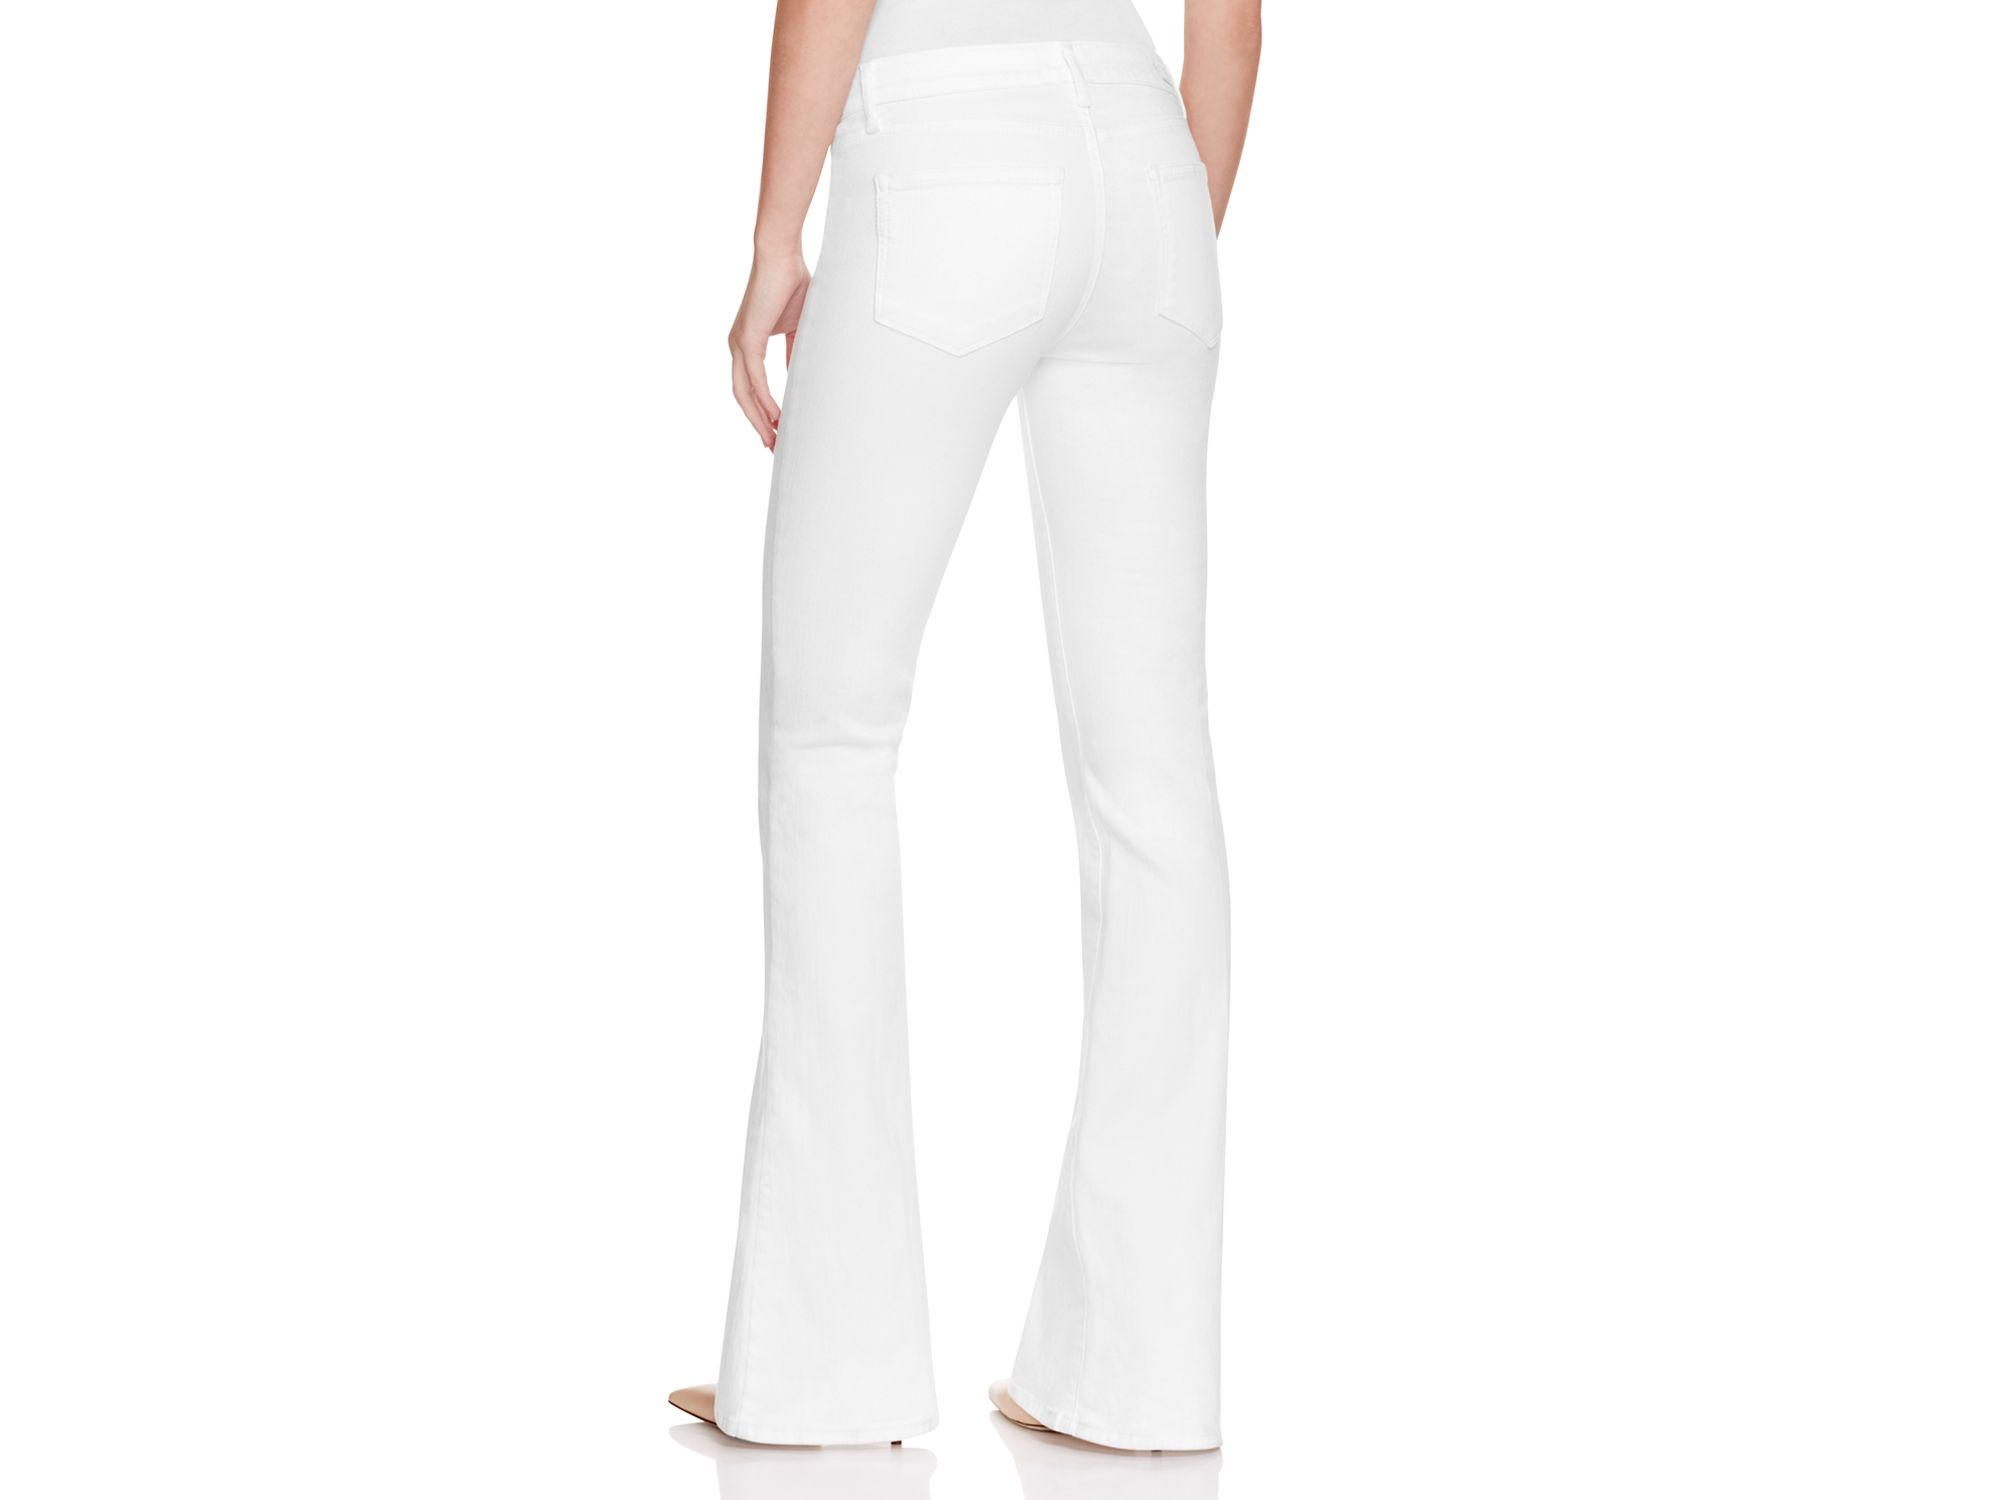 Paige Denim Lou Lou Flare Jeans In Ultra White in White | Lyst